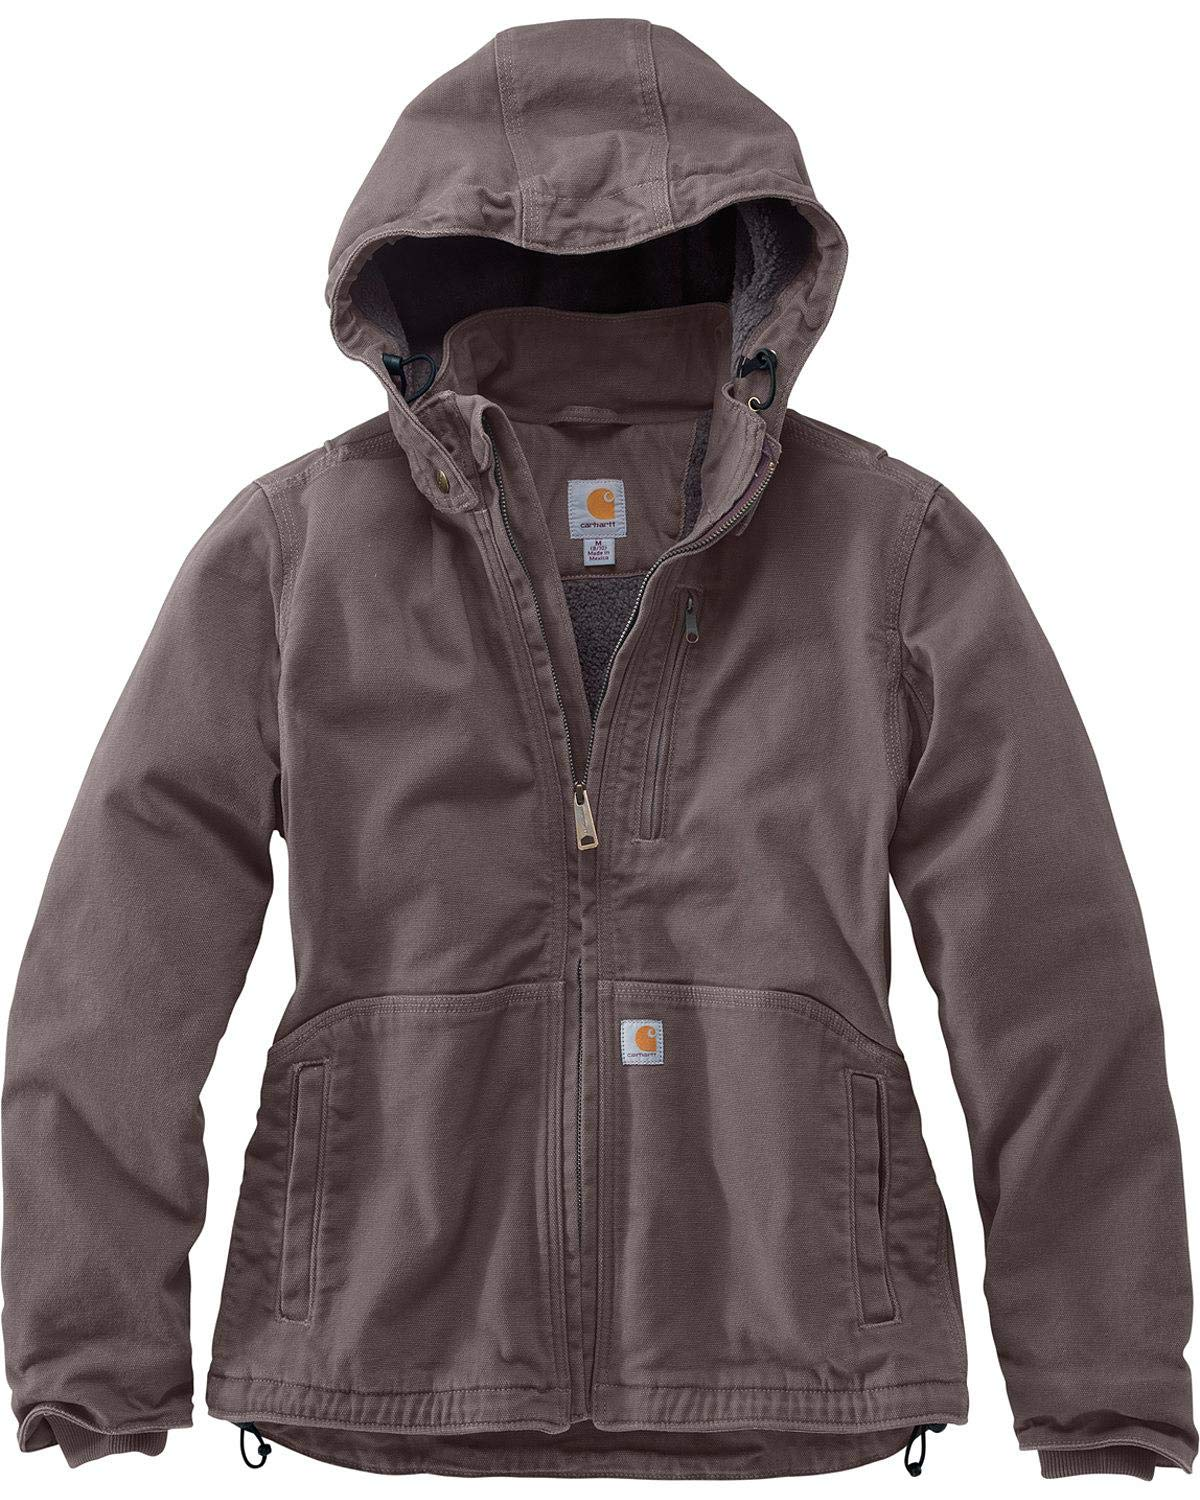 Carhartt Women's Full Swing Caldwell Jacket (Regular and Plus Sizes), Taupe Gray/Shadow, Medium by Carhartt